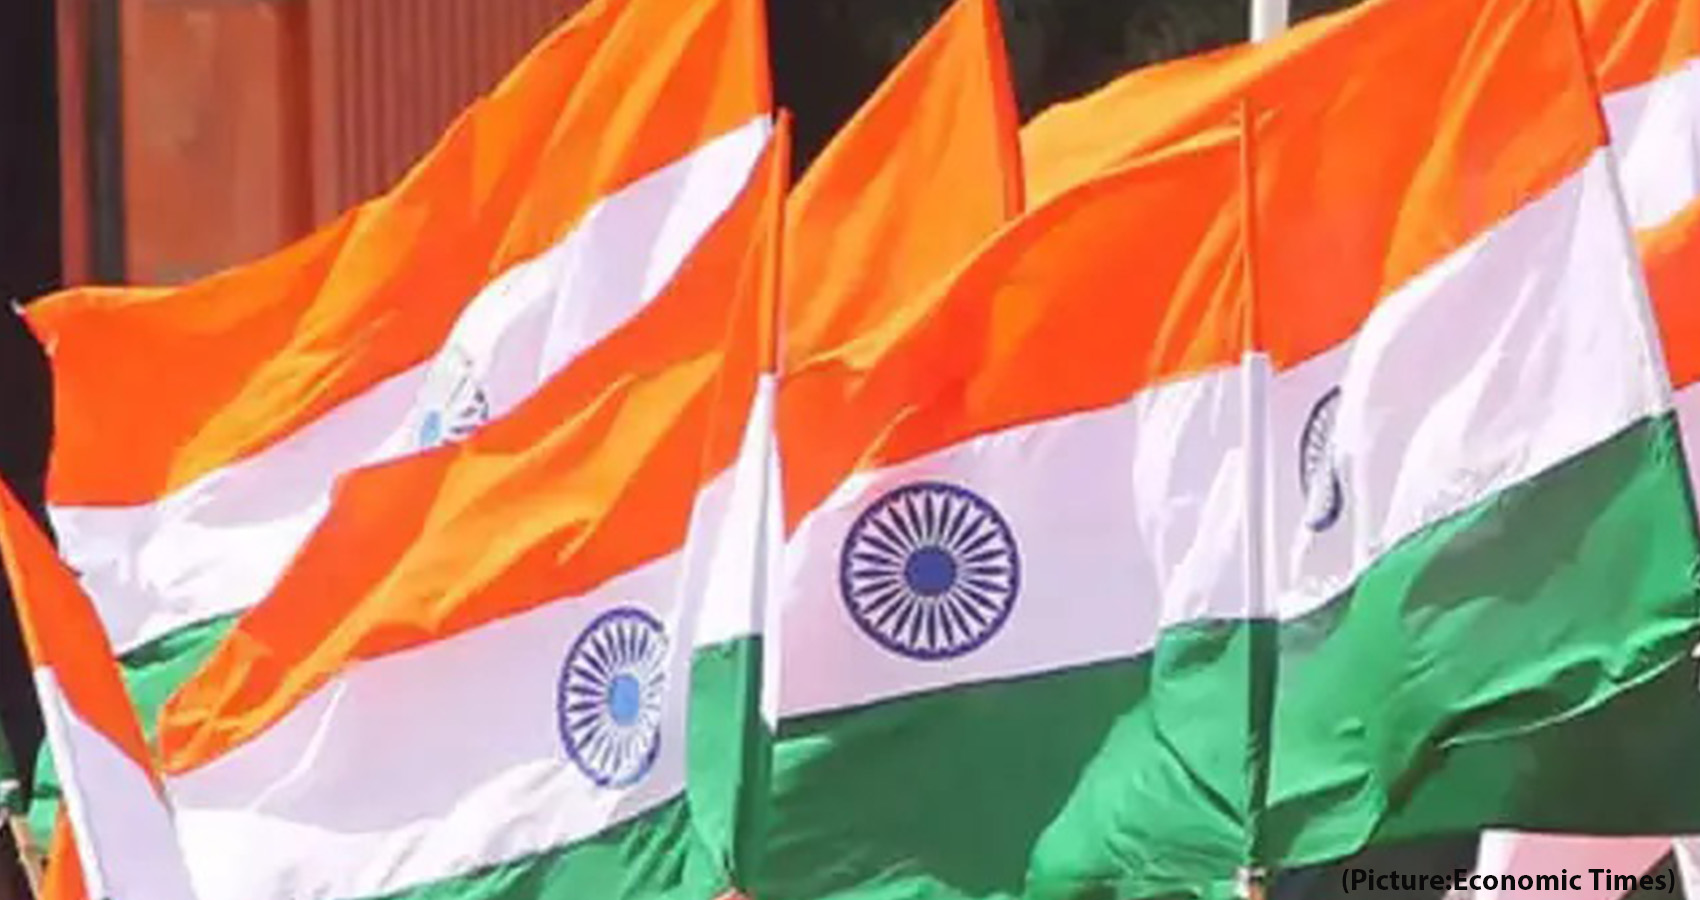 On 75th Independence Anniversary, India Elected President of UN Security Council